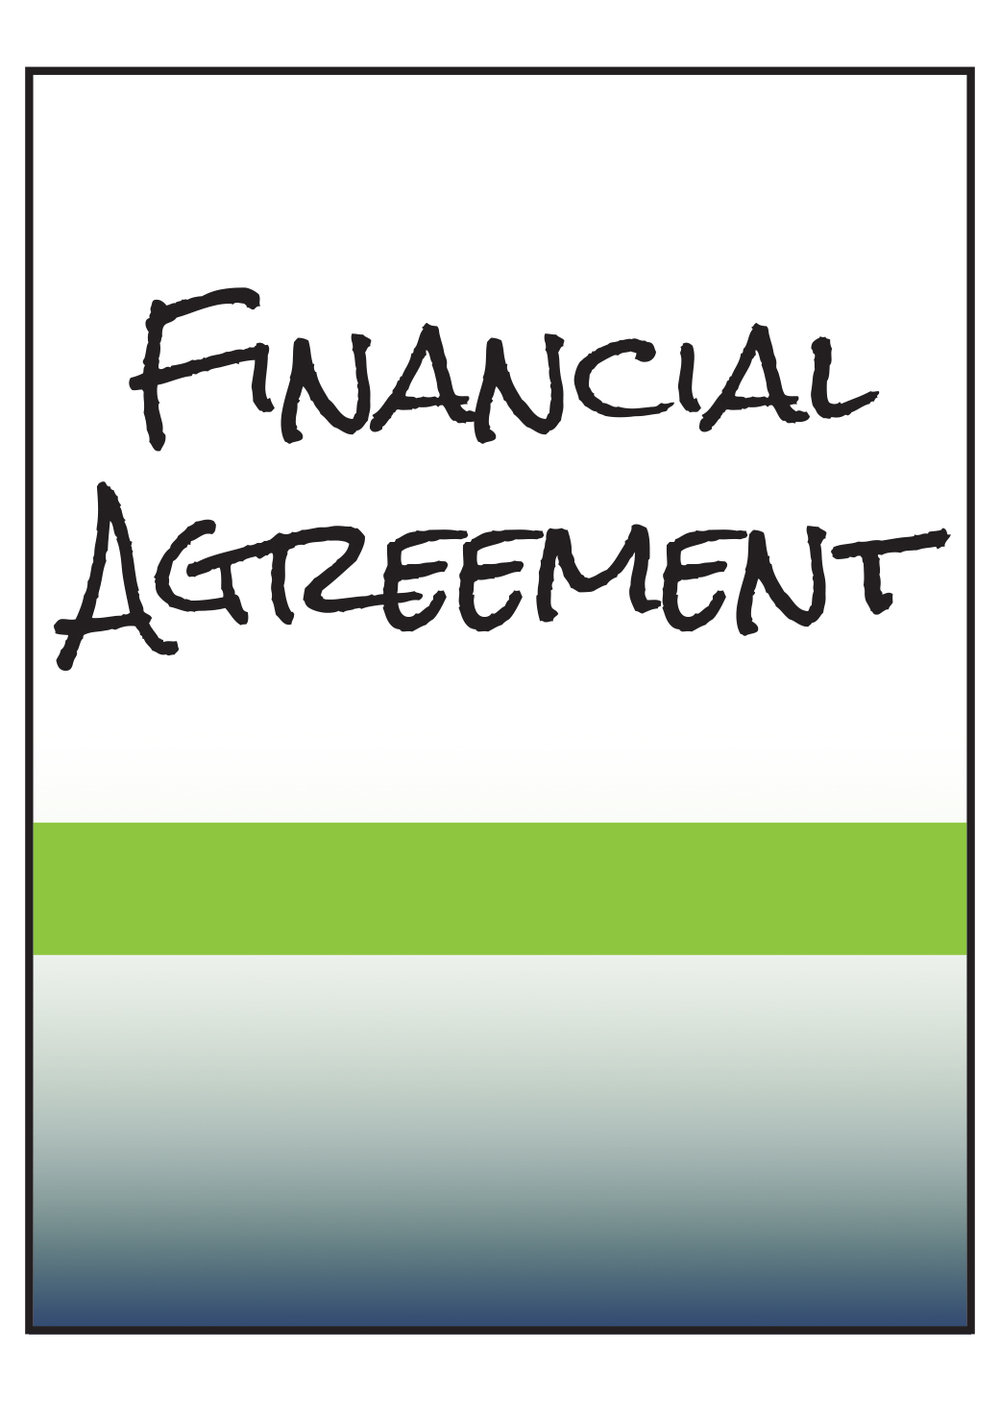 cochrane-Financial-agreement.jpg